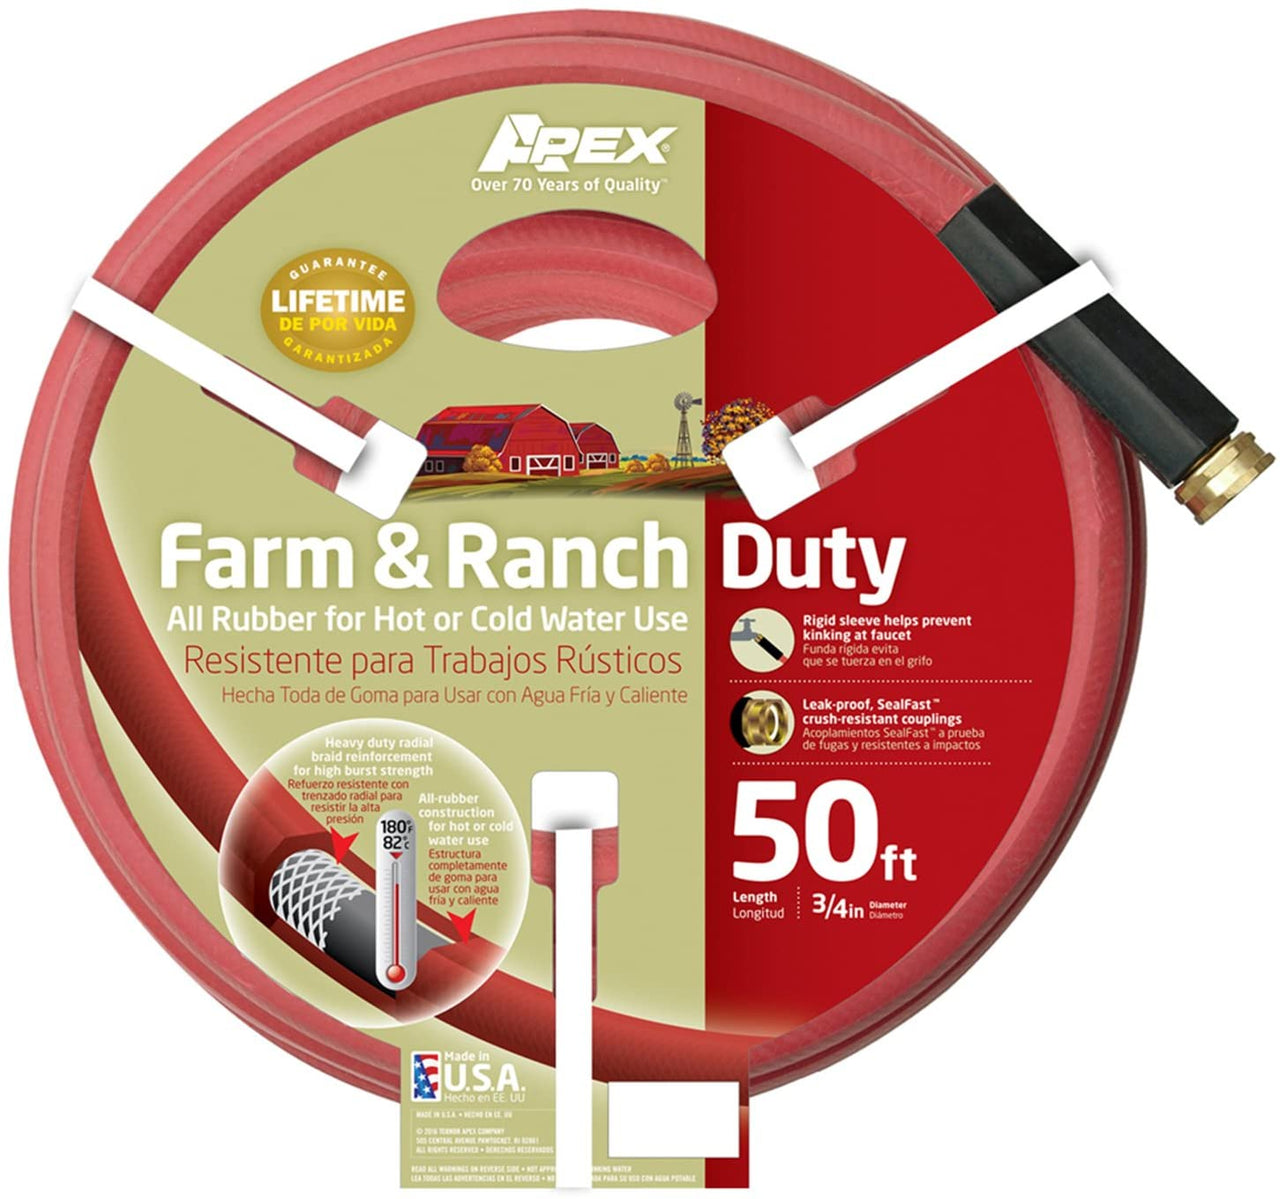 "Teknor Apex 969RR-50 Farm & Ranch Duty Hose, 3/4"" x 50'"